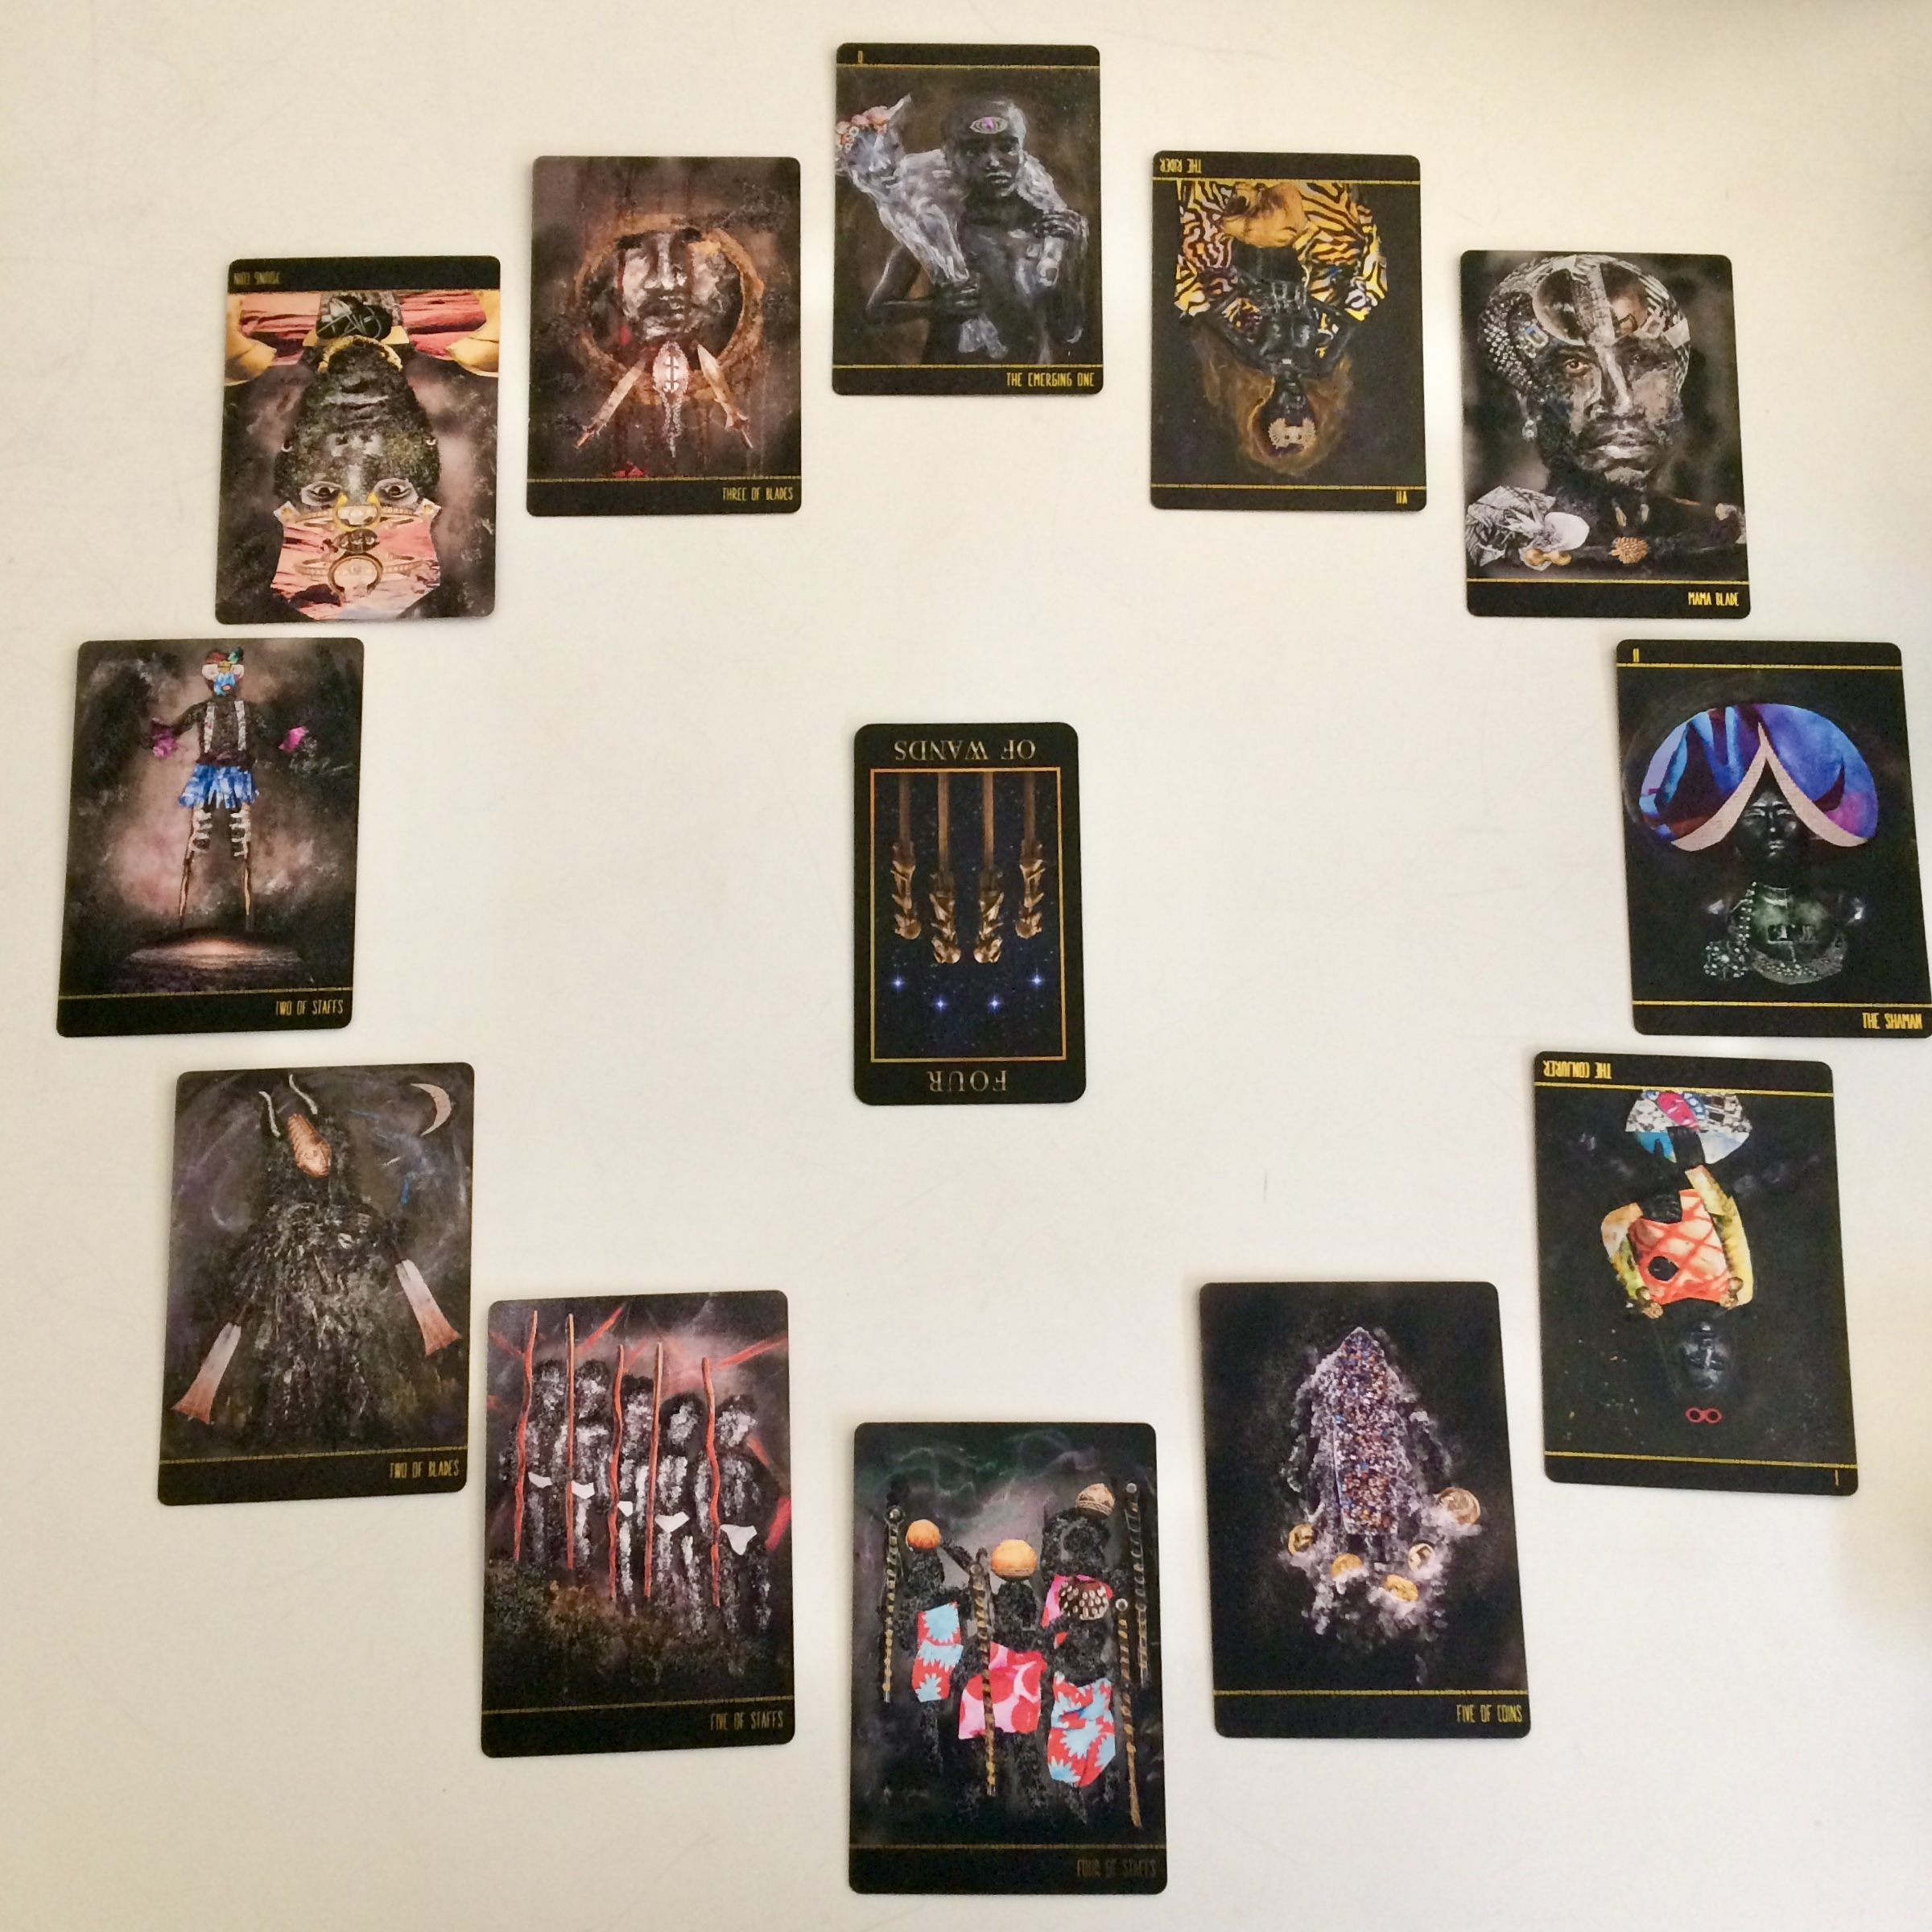 Astrological spread containing cards from  Manzel's Tarot  and  Dust II Onyx